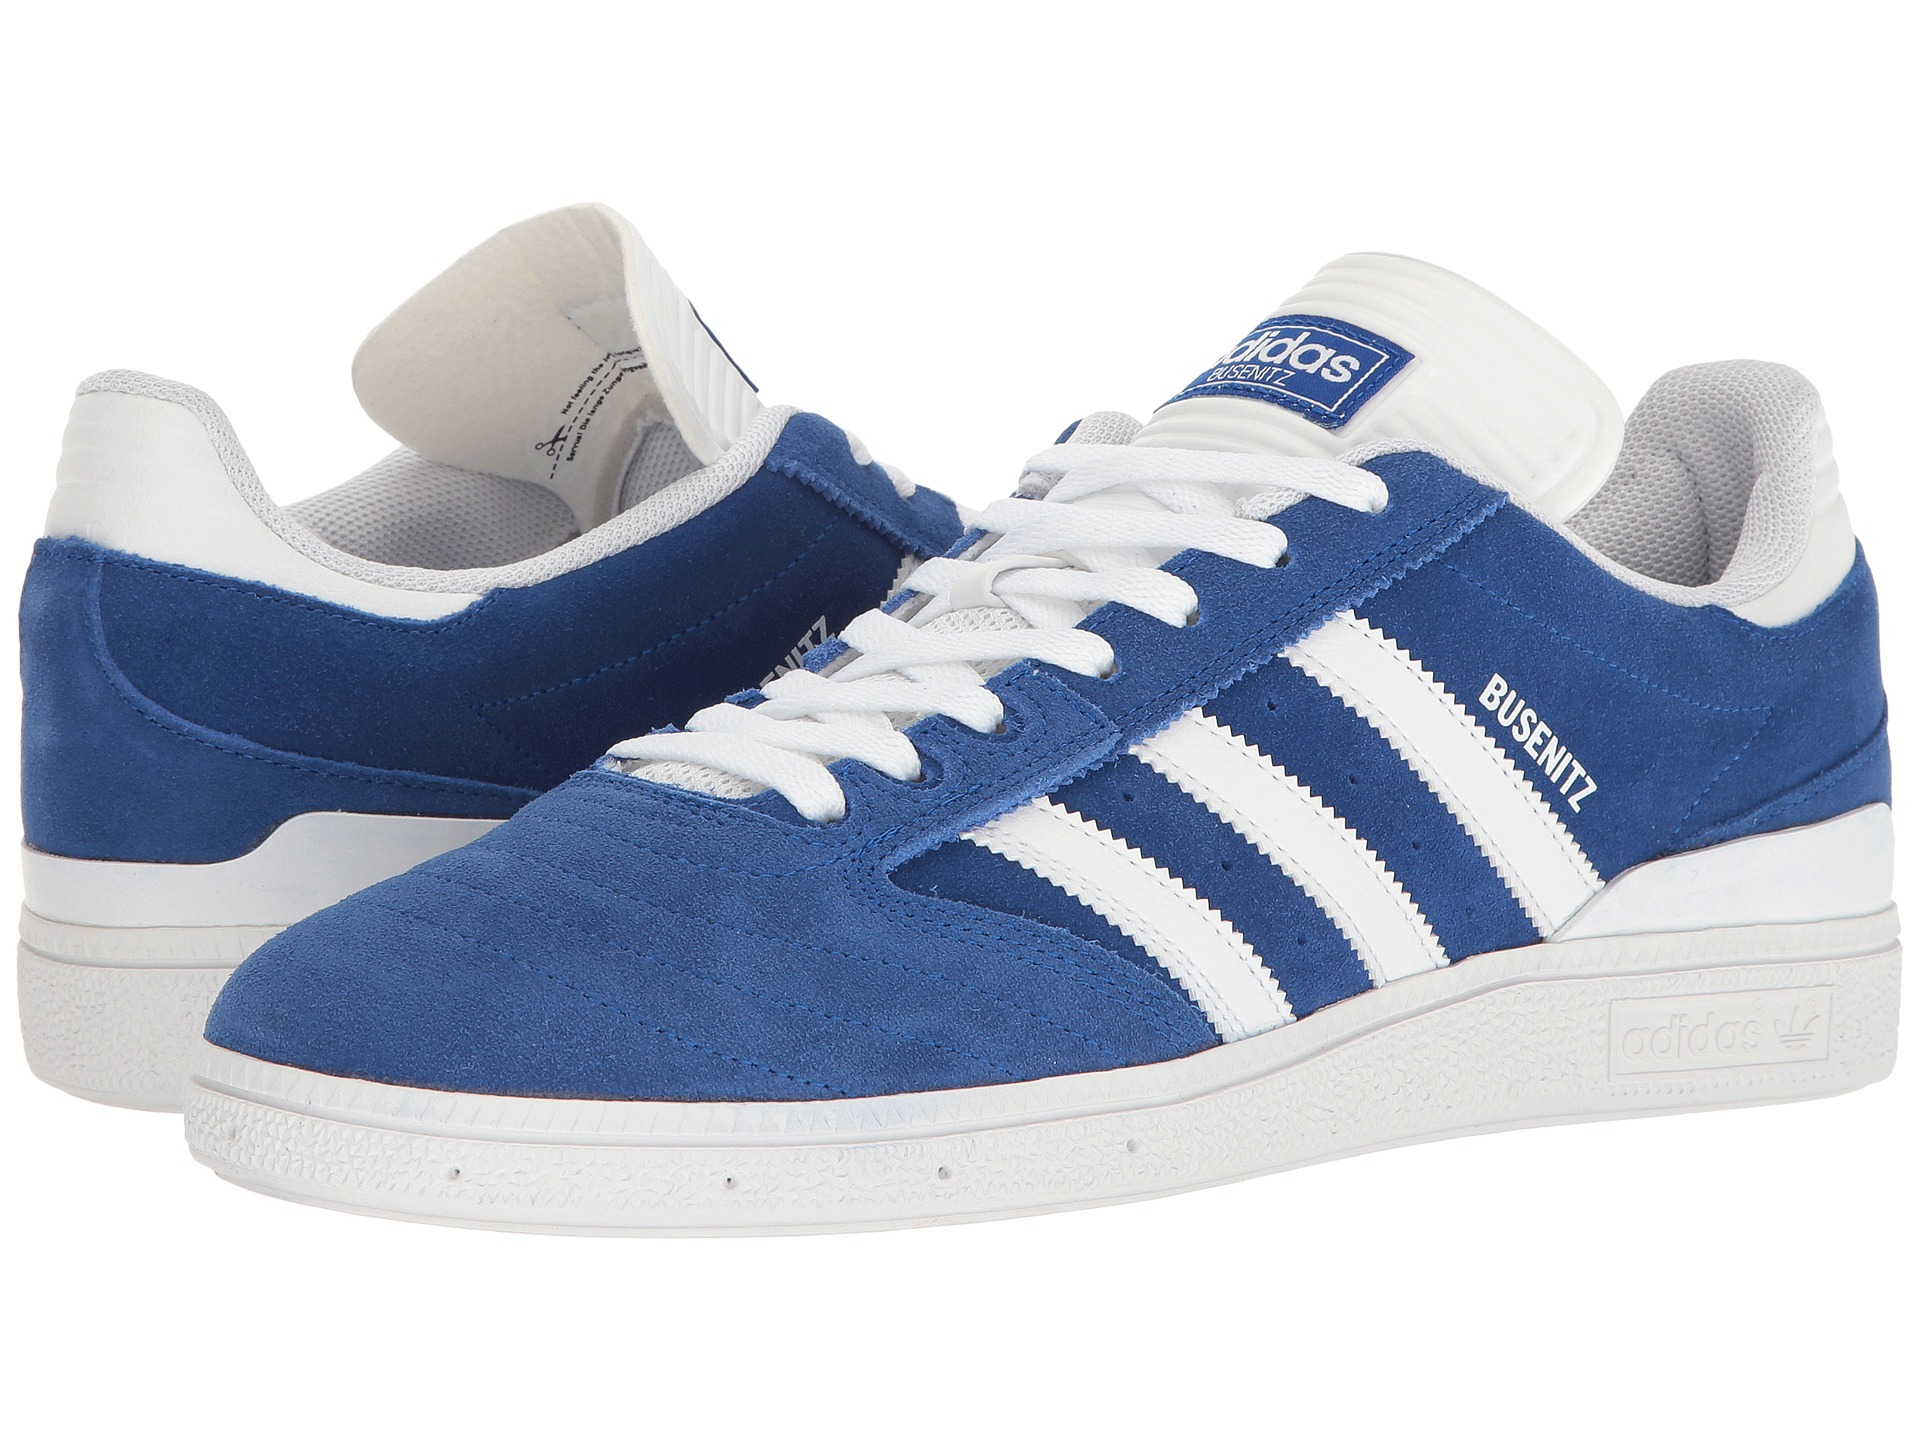 adidas Skateboarding Busenitz Pro at 6pm.com